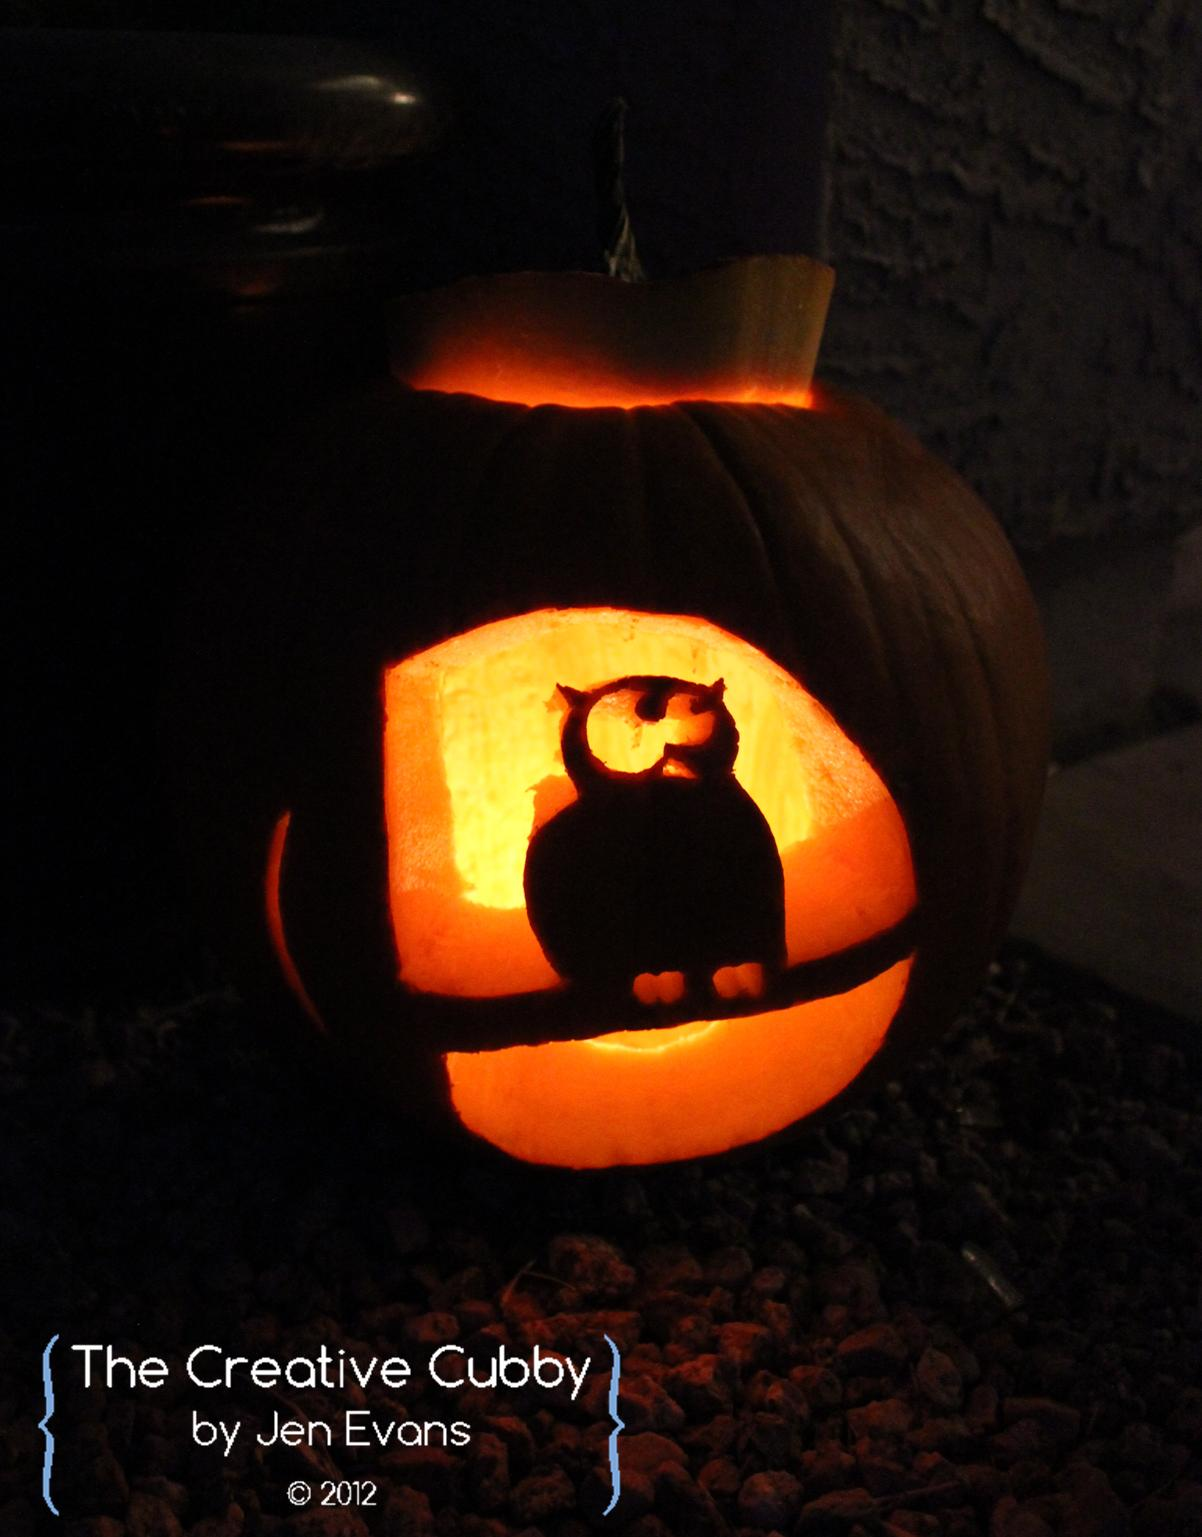 The Creative Cubby: How to Use Pumpkin Carving Templates